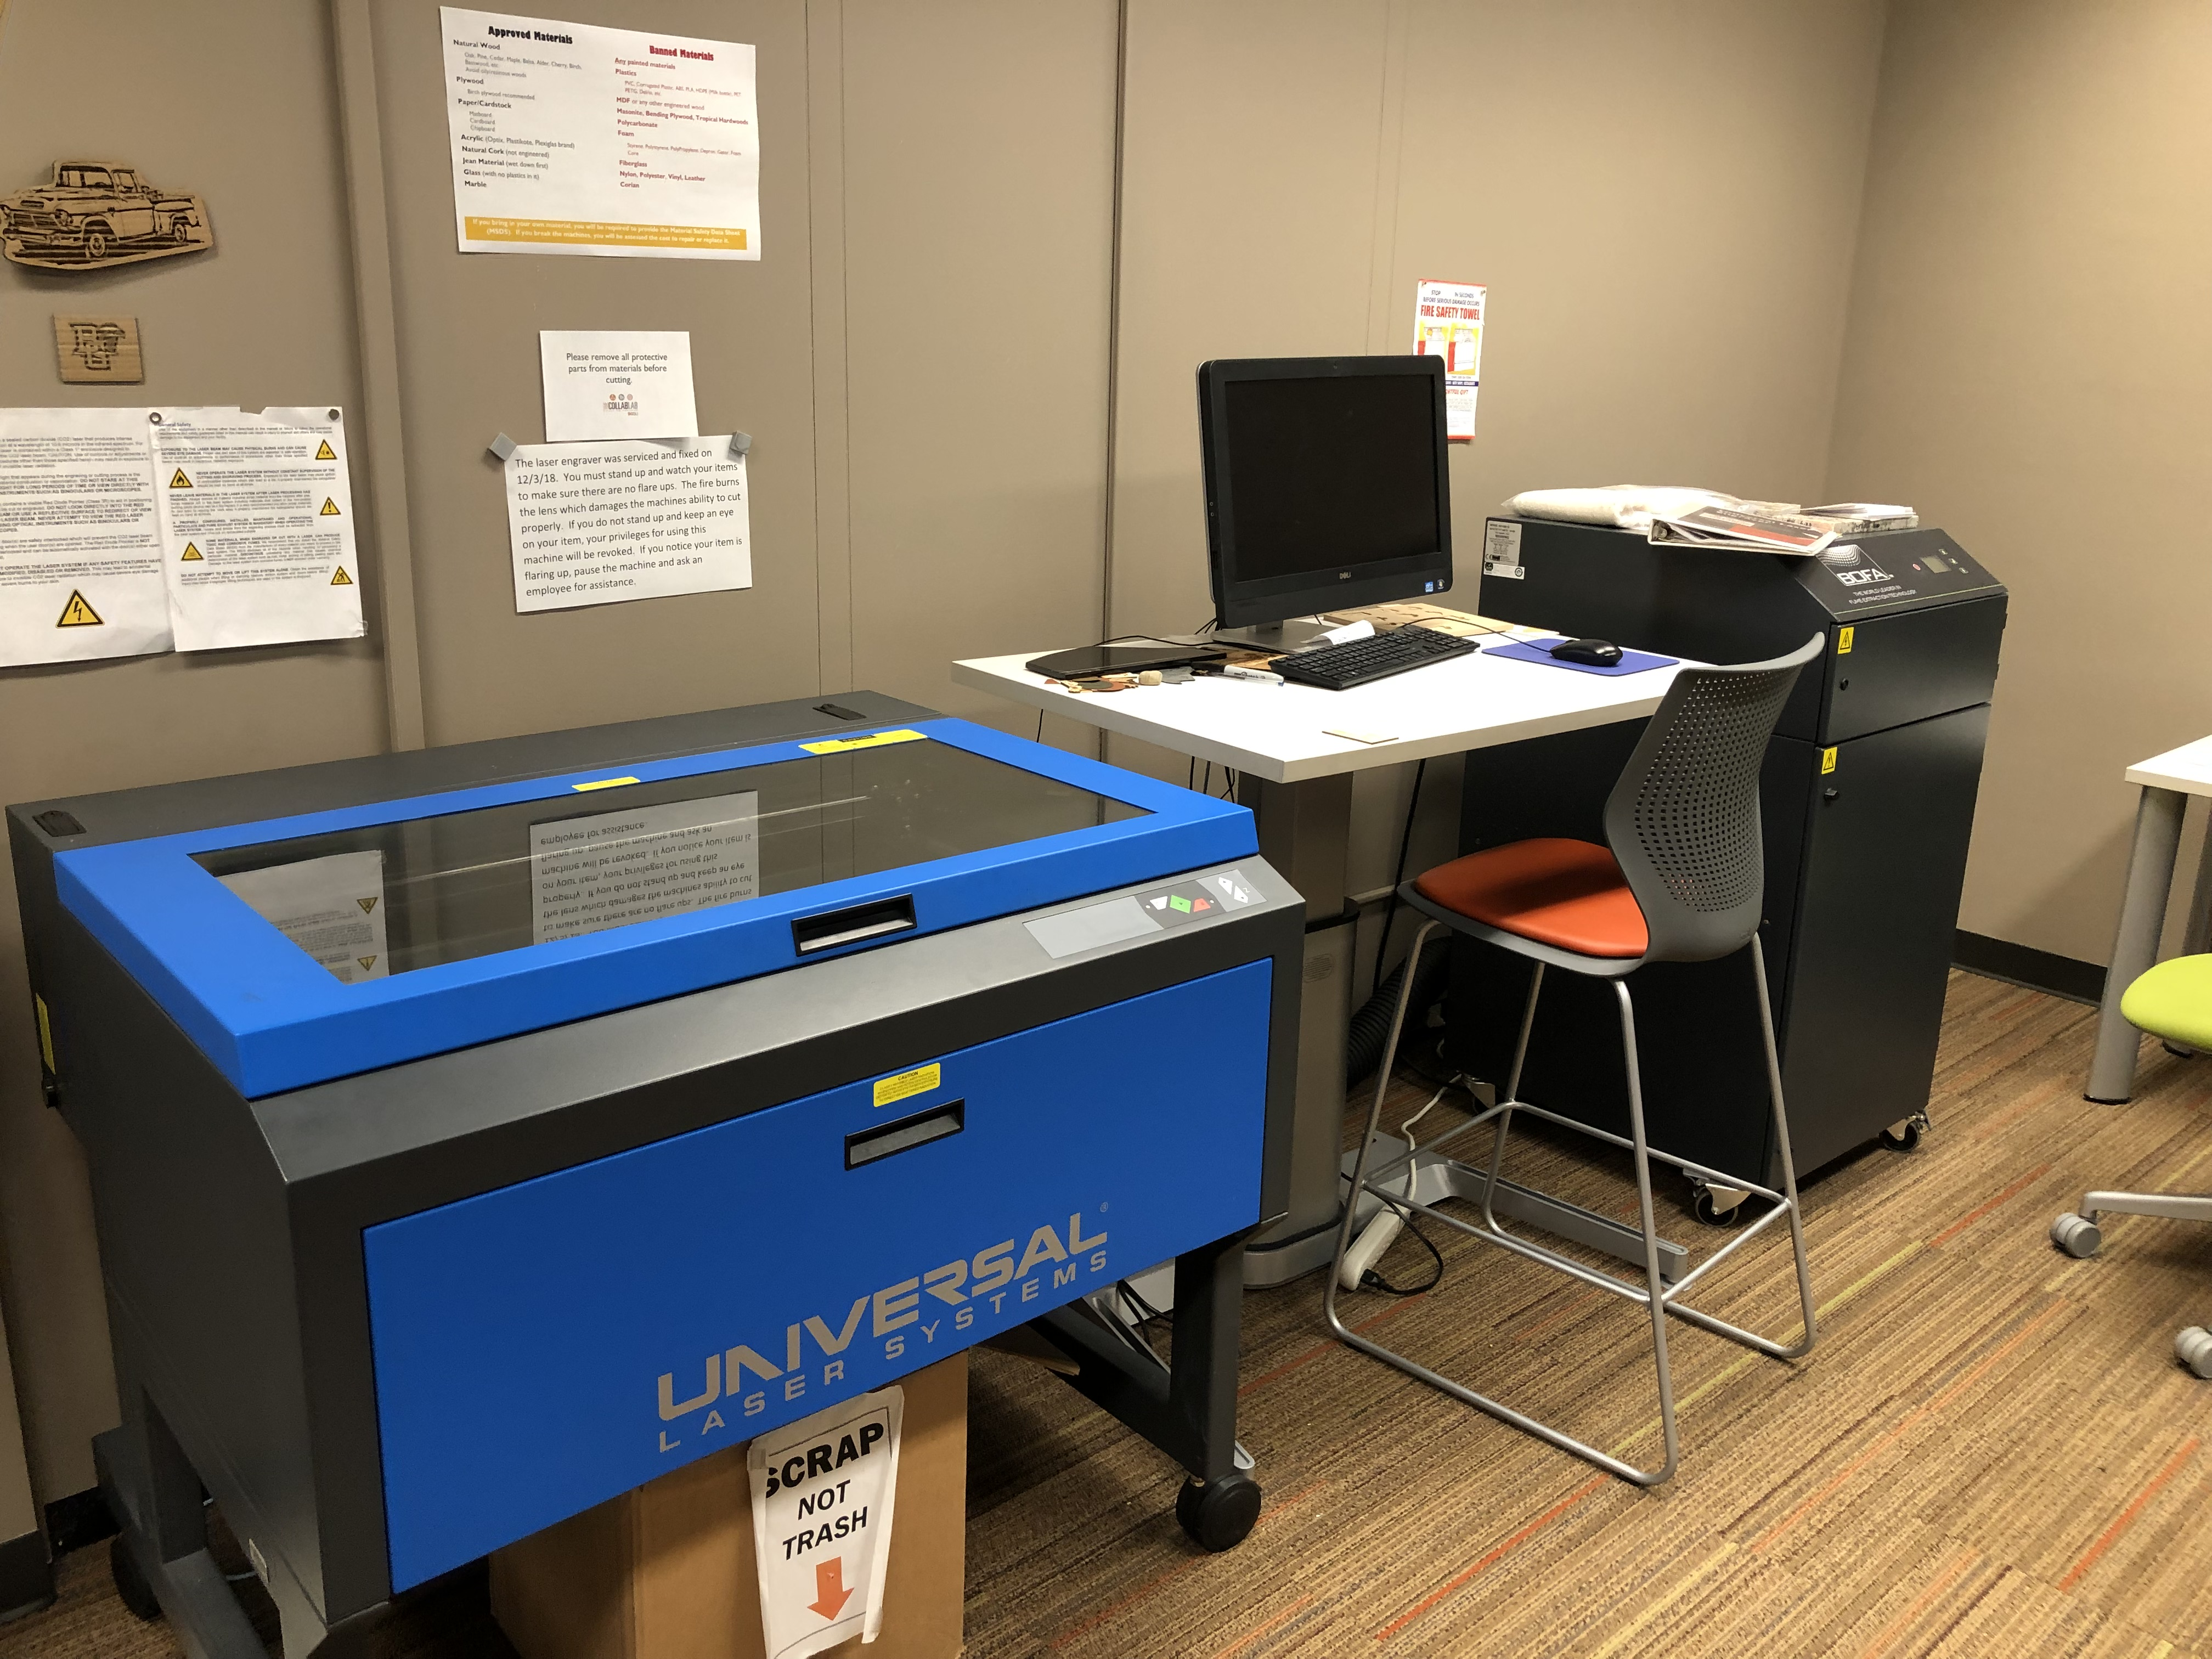 File:Library laser cutter jpg - Wikimedia Commons